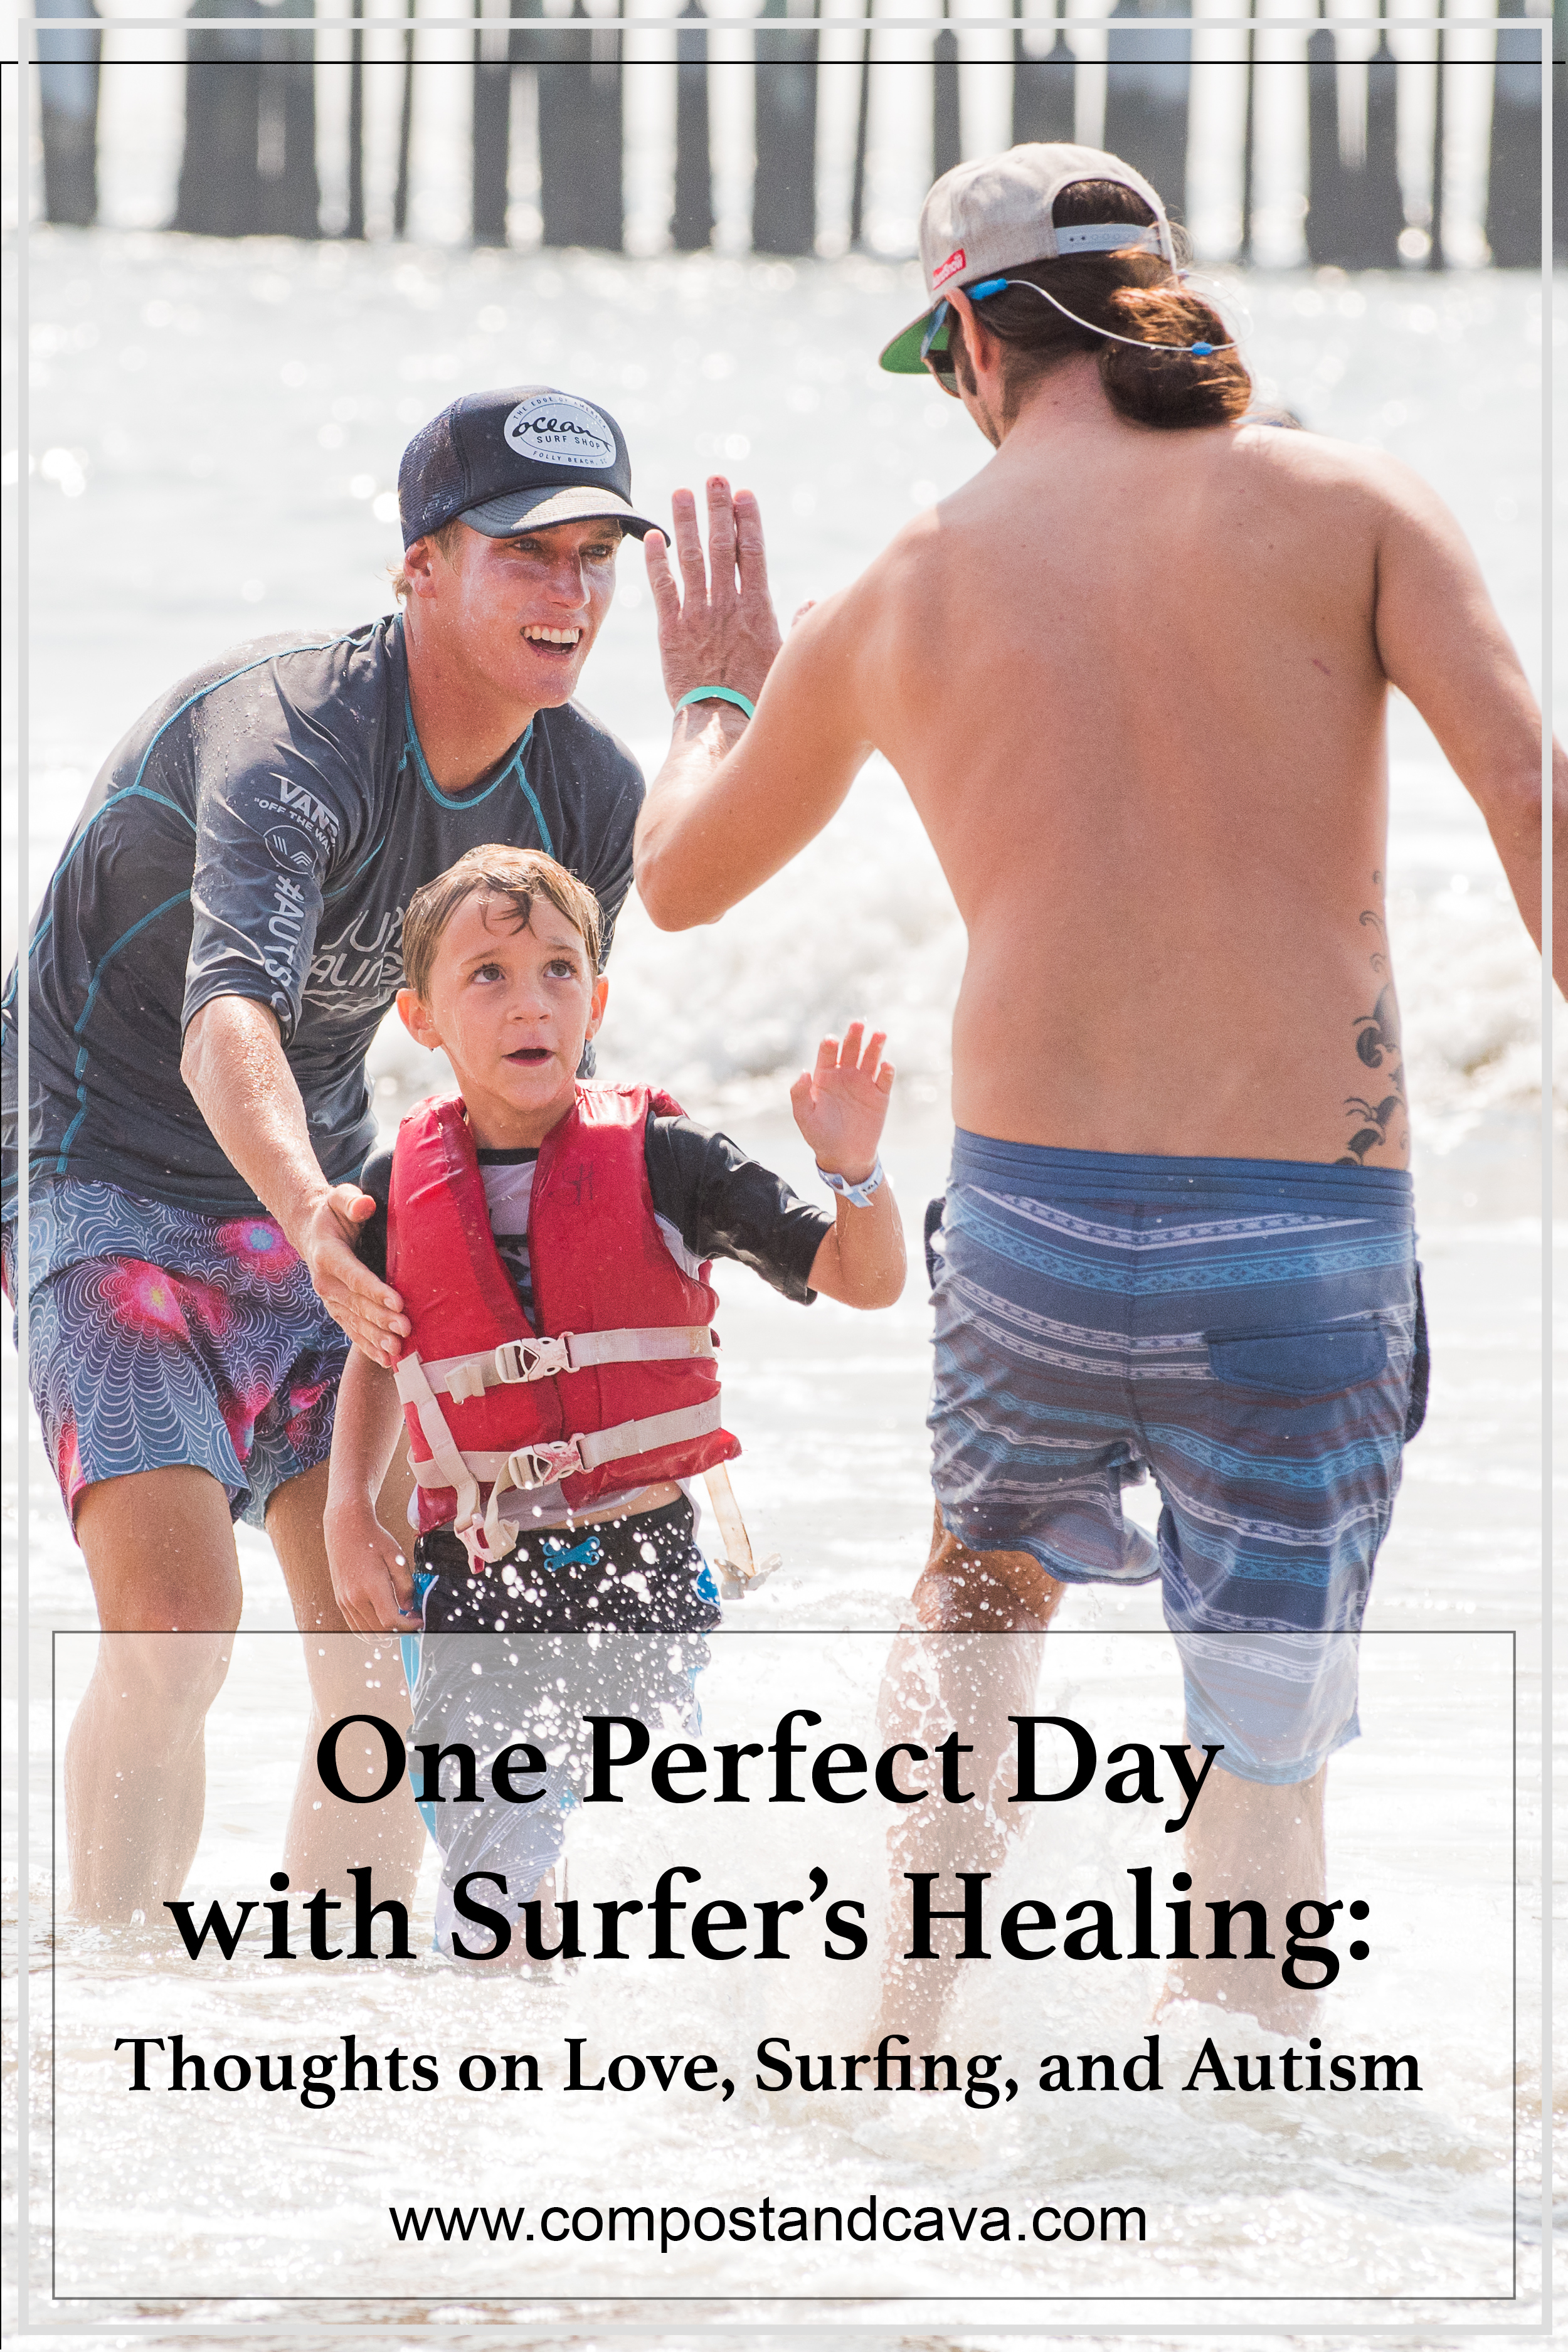 One Perfect Day with Surfer's Healing: thoughts on love, surfing, and autism.